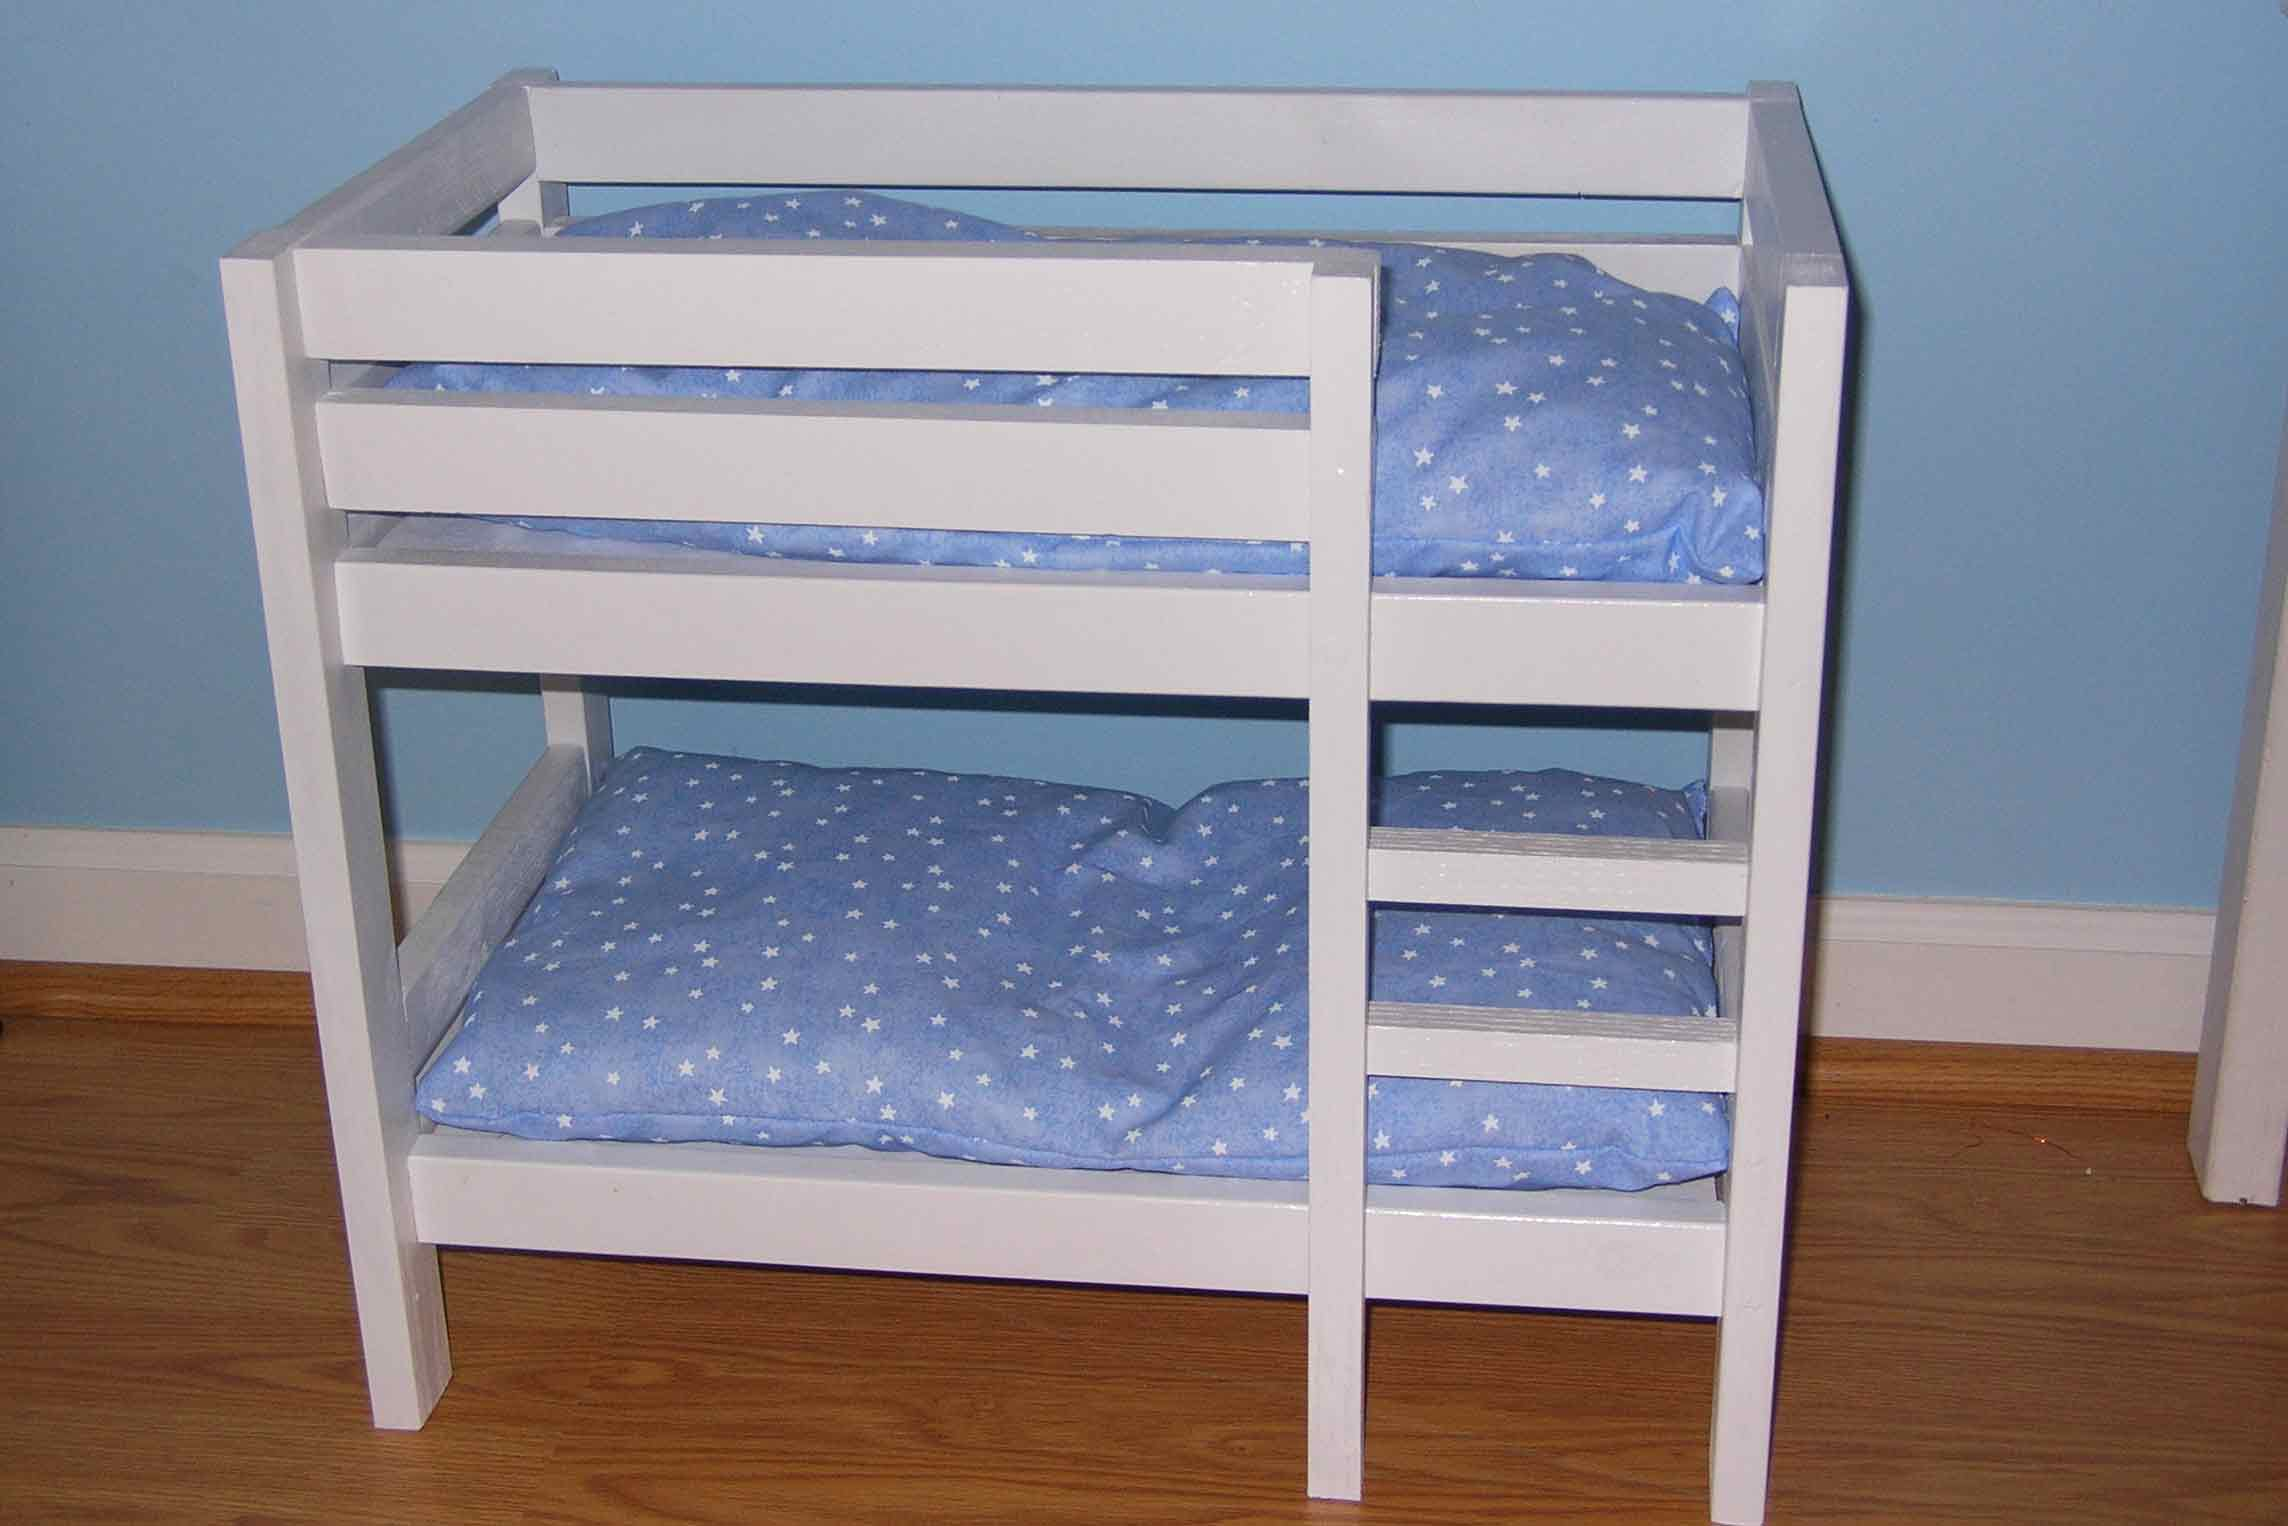 How To Build A Reborn Doll Bunk Bed World Reborn Doll